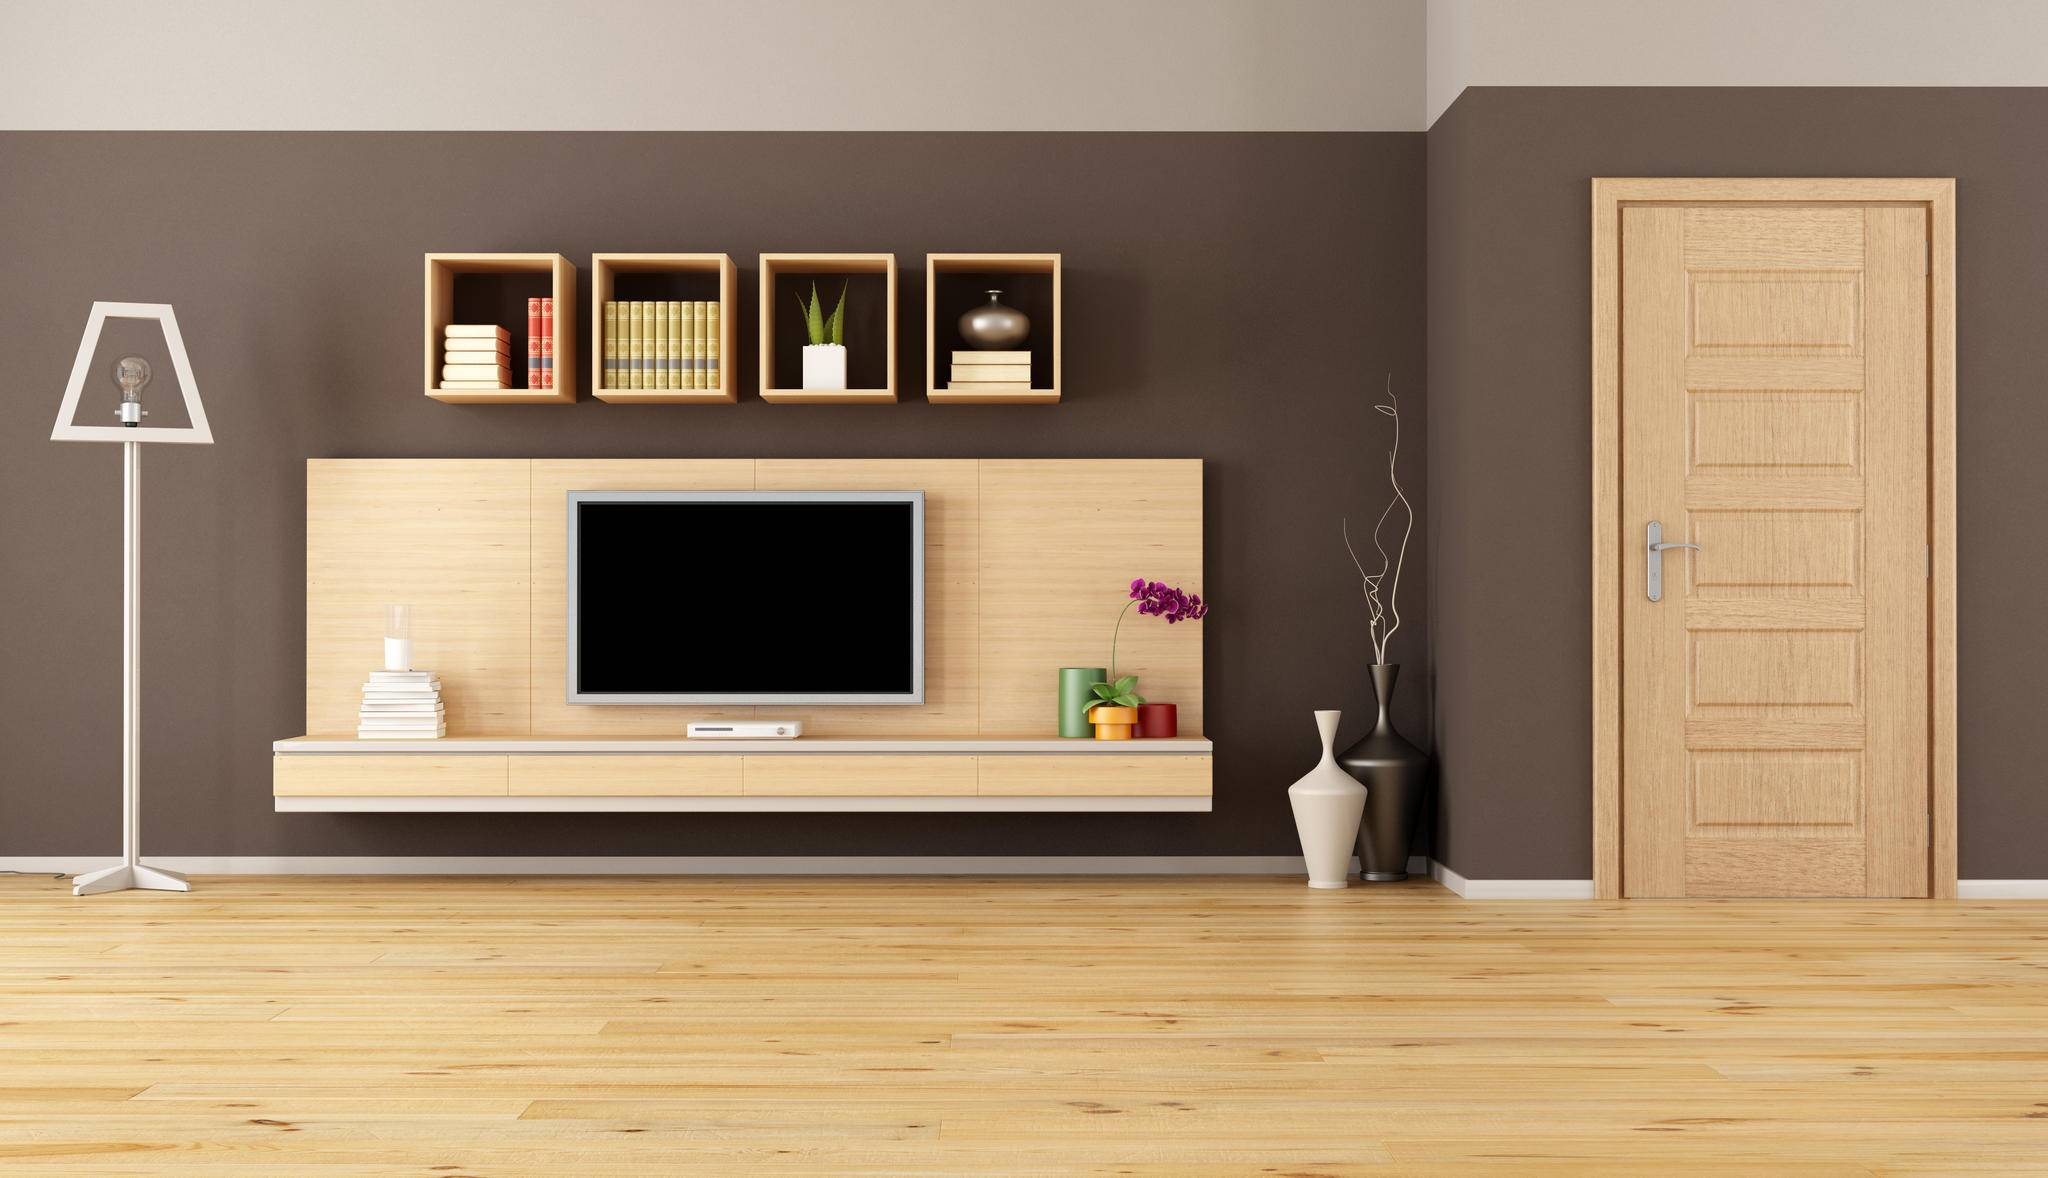 schrank fr fernseher gallery of schrank mit fernseher f r. Black Bedroom Furniture Sets. Home Design Ideas